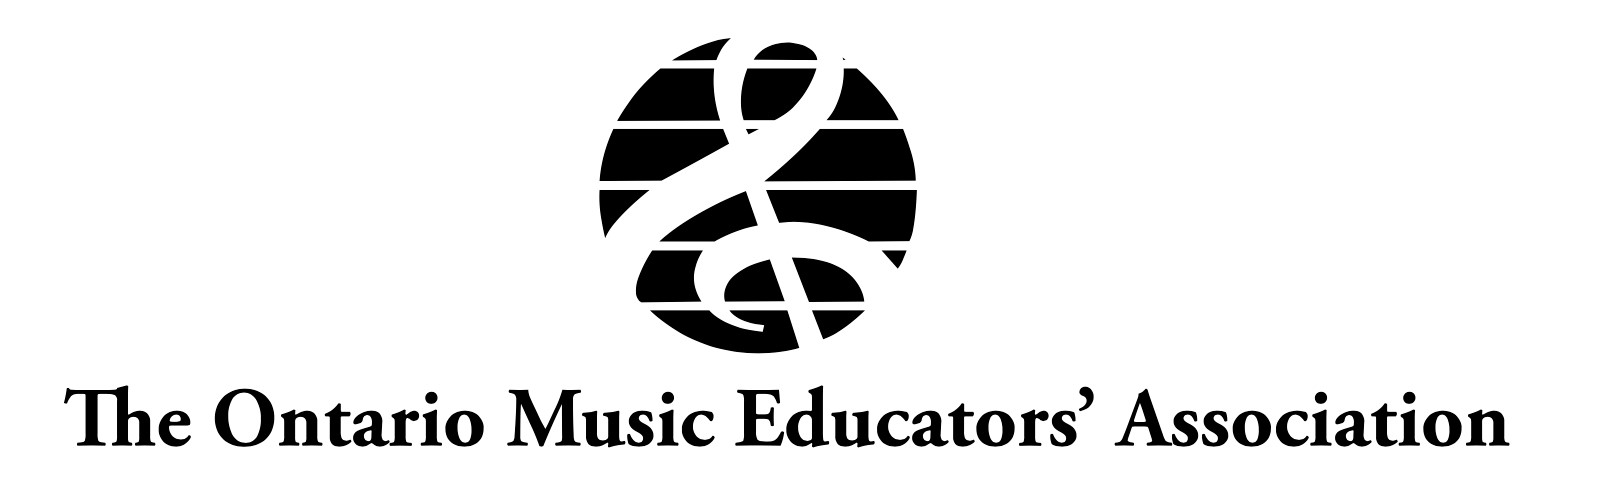 Ontario Music Educators Association Conference 2017 - Interlude